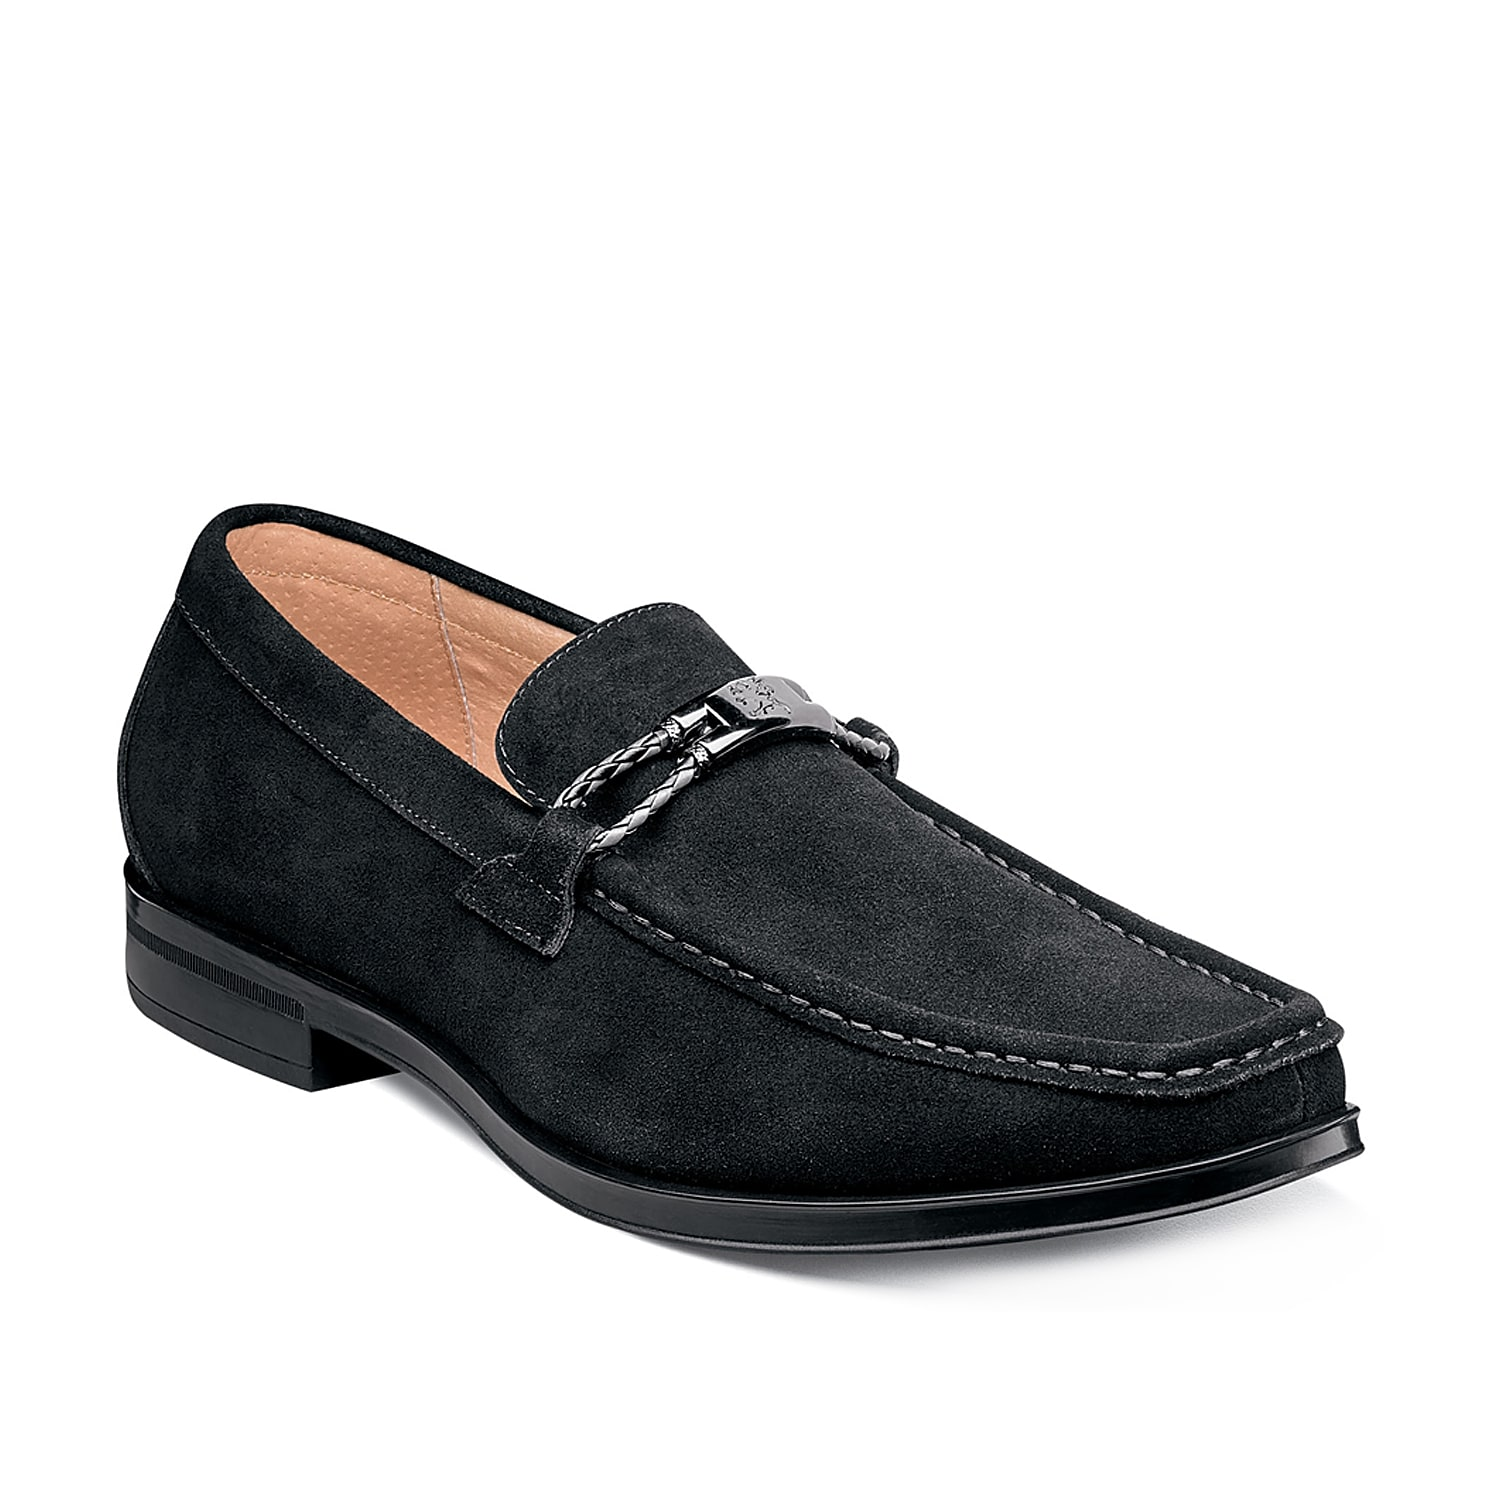 Lend a tasteful touch to an outfit for any occasion with the Neville loafers from Stacy Adams. These suede slip-ons feature a modern bit detail and classic moc toe to keep this pair timeless.